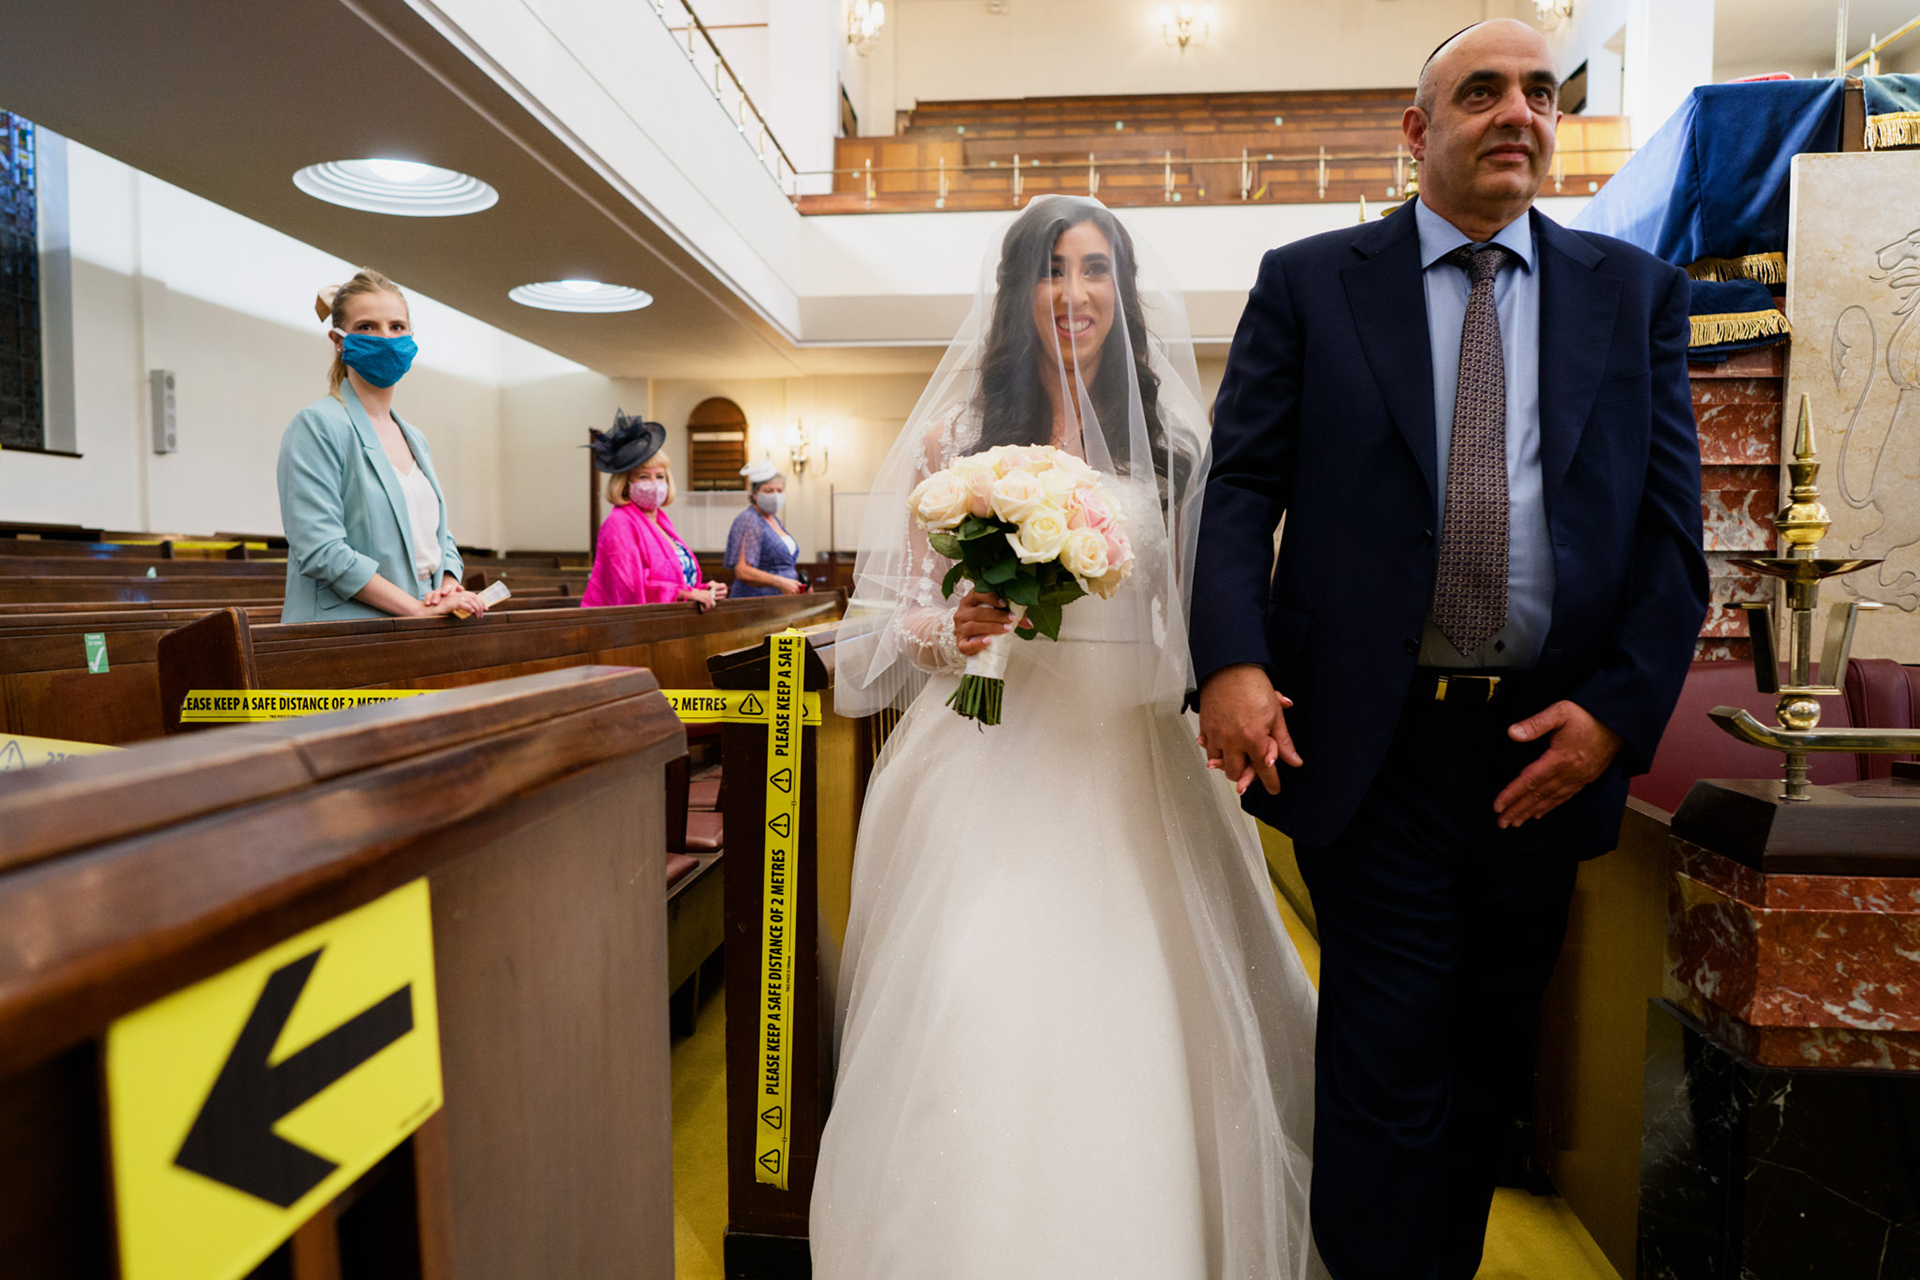 JCR-UK: Central Synagogue, Great Portland Street Elopement Photo | The bride and her father enter the synagogue